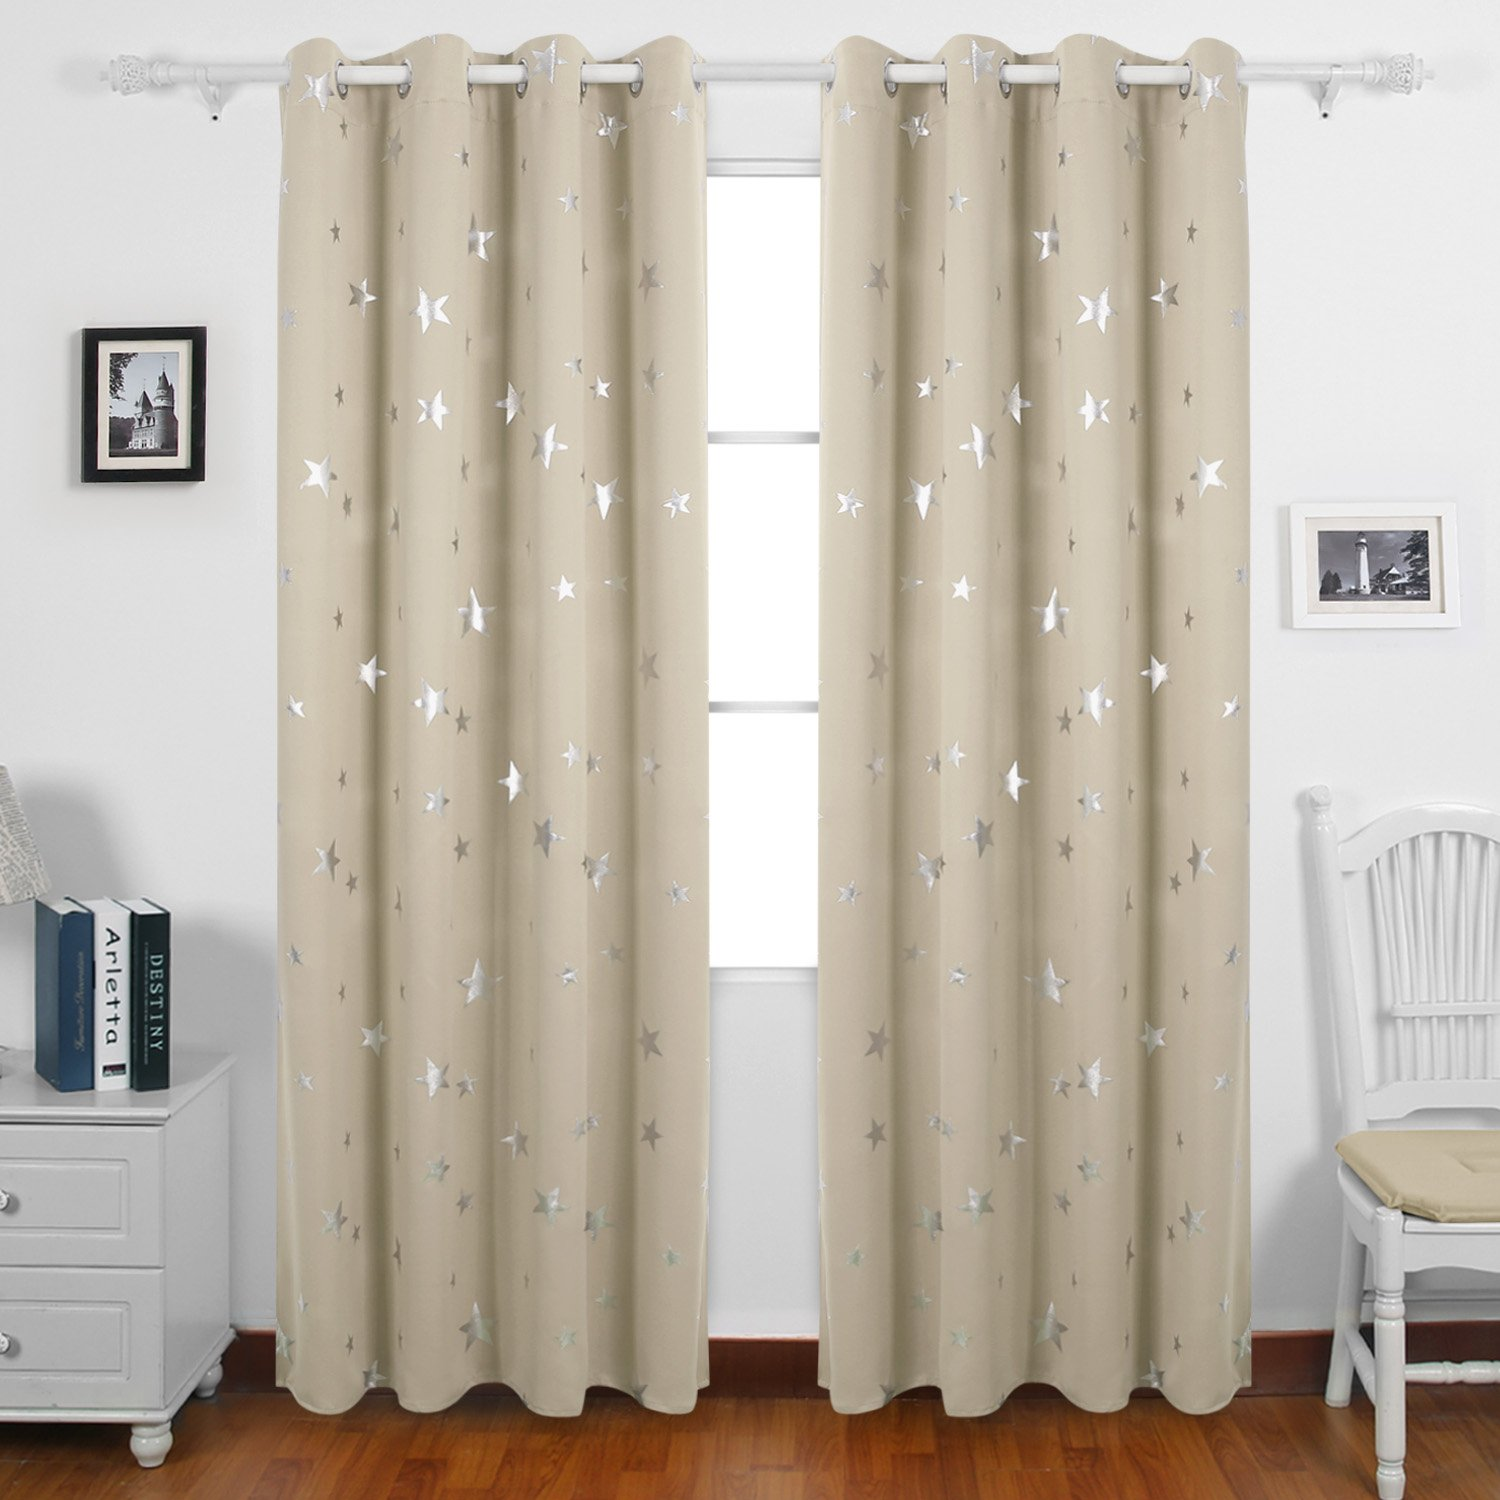 curtains top thermal and drapes source grommet window darkening meridian curtain insulated room